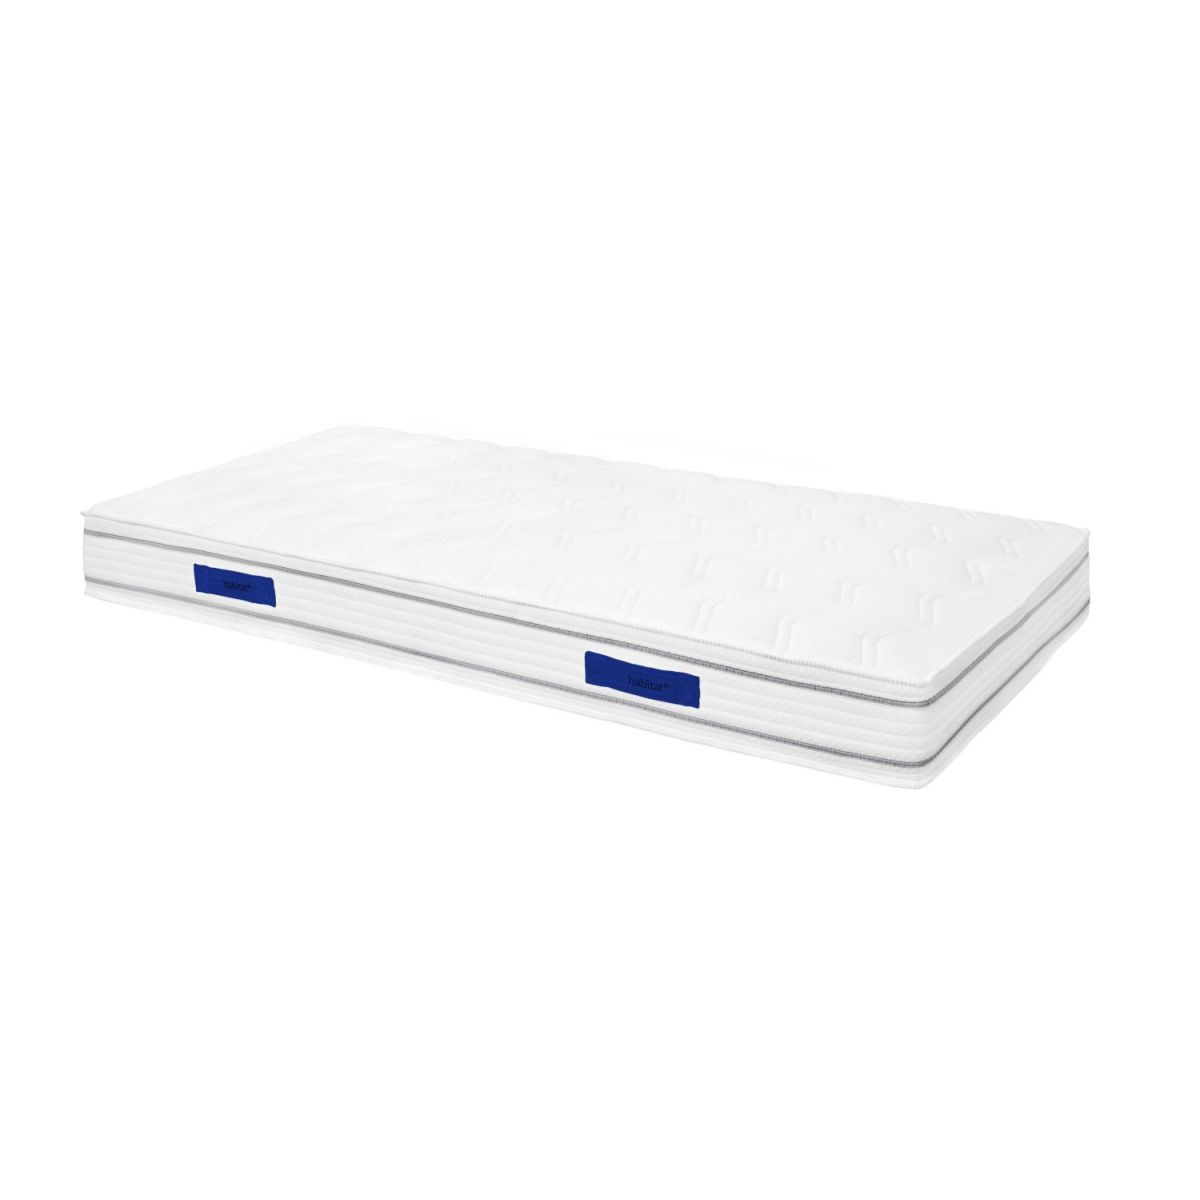 Spring mattress, width 21 cm, 80x200cm - firm support n°1